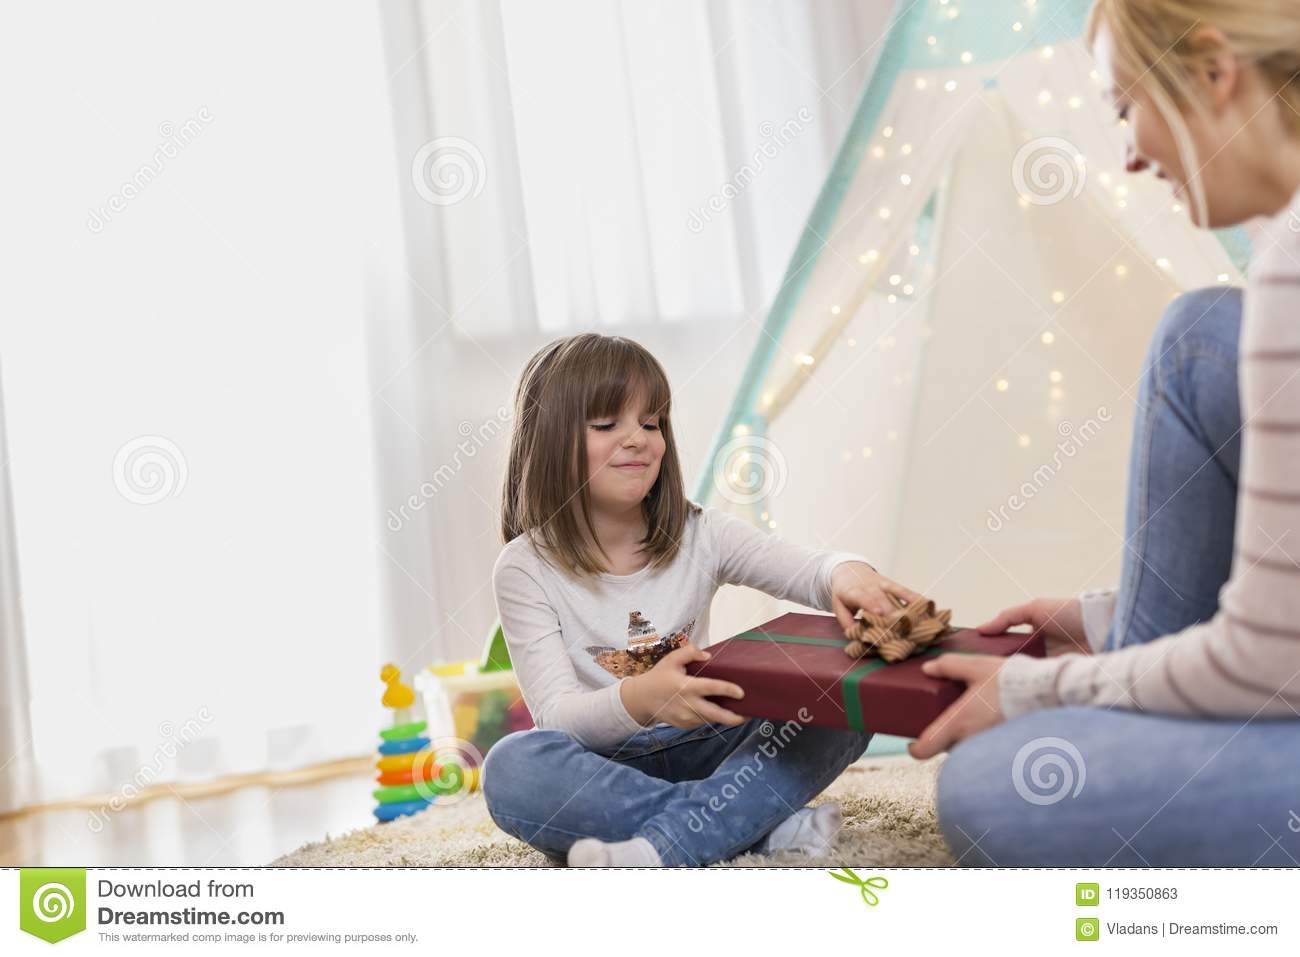 Young Mother Giving A Birthday Present To Her Daughter Focus On The